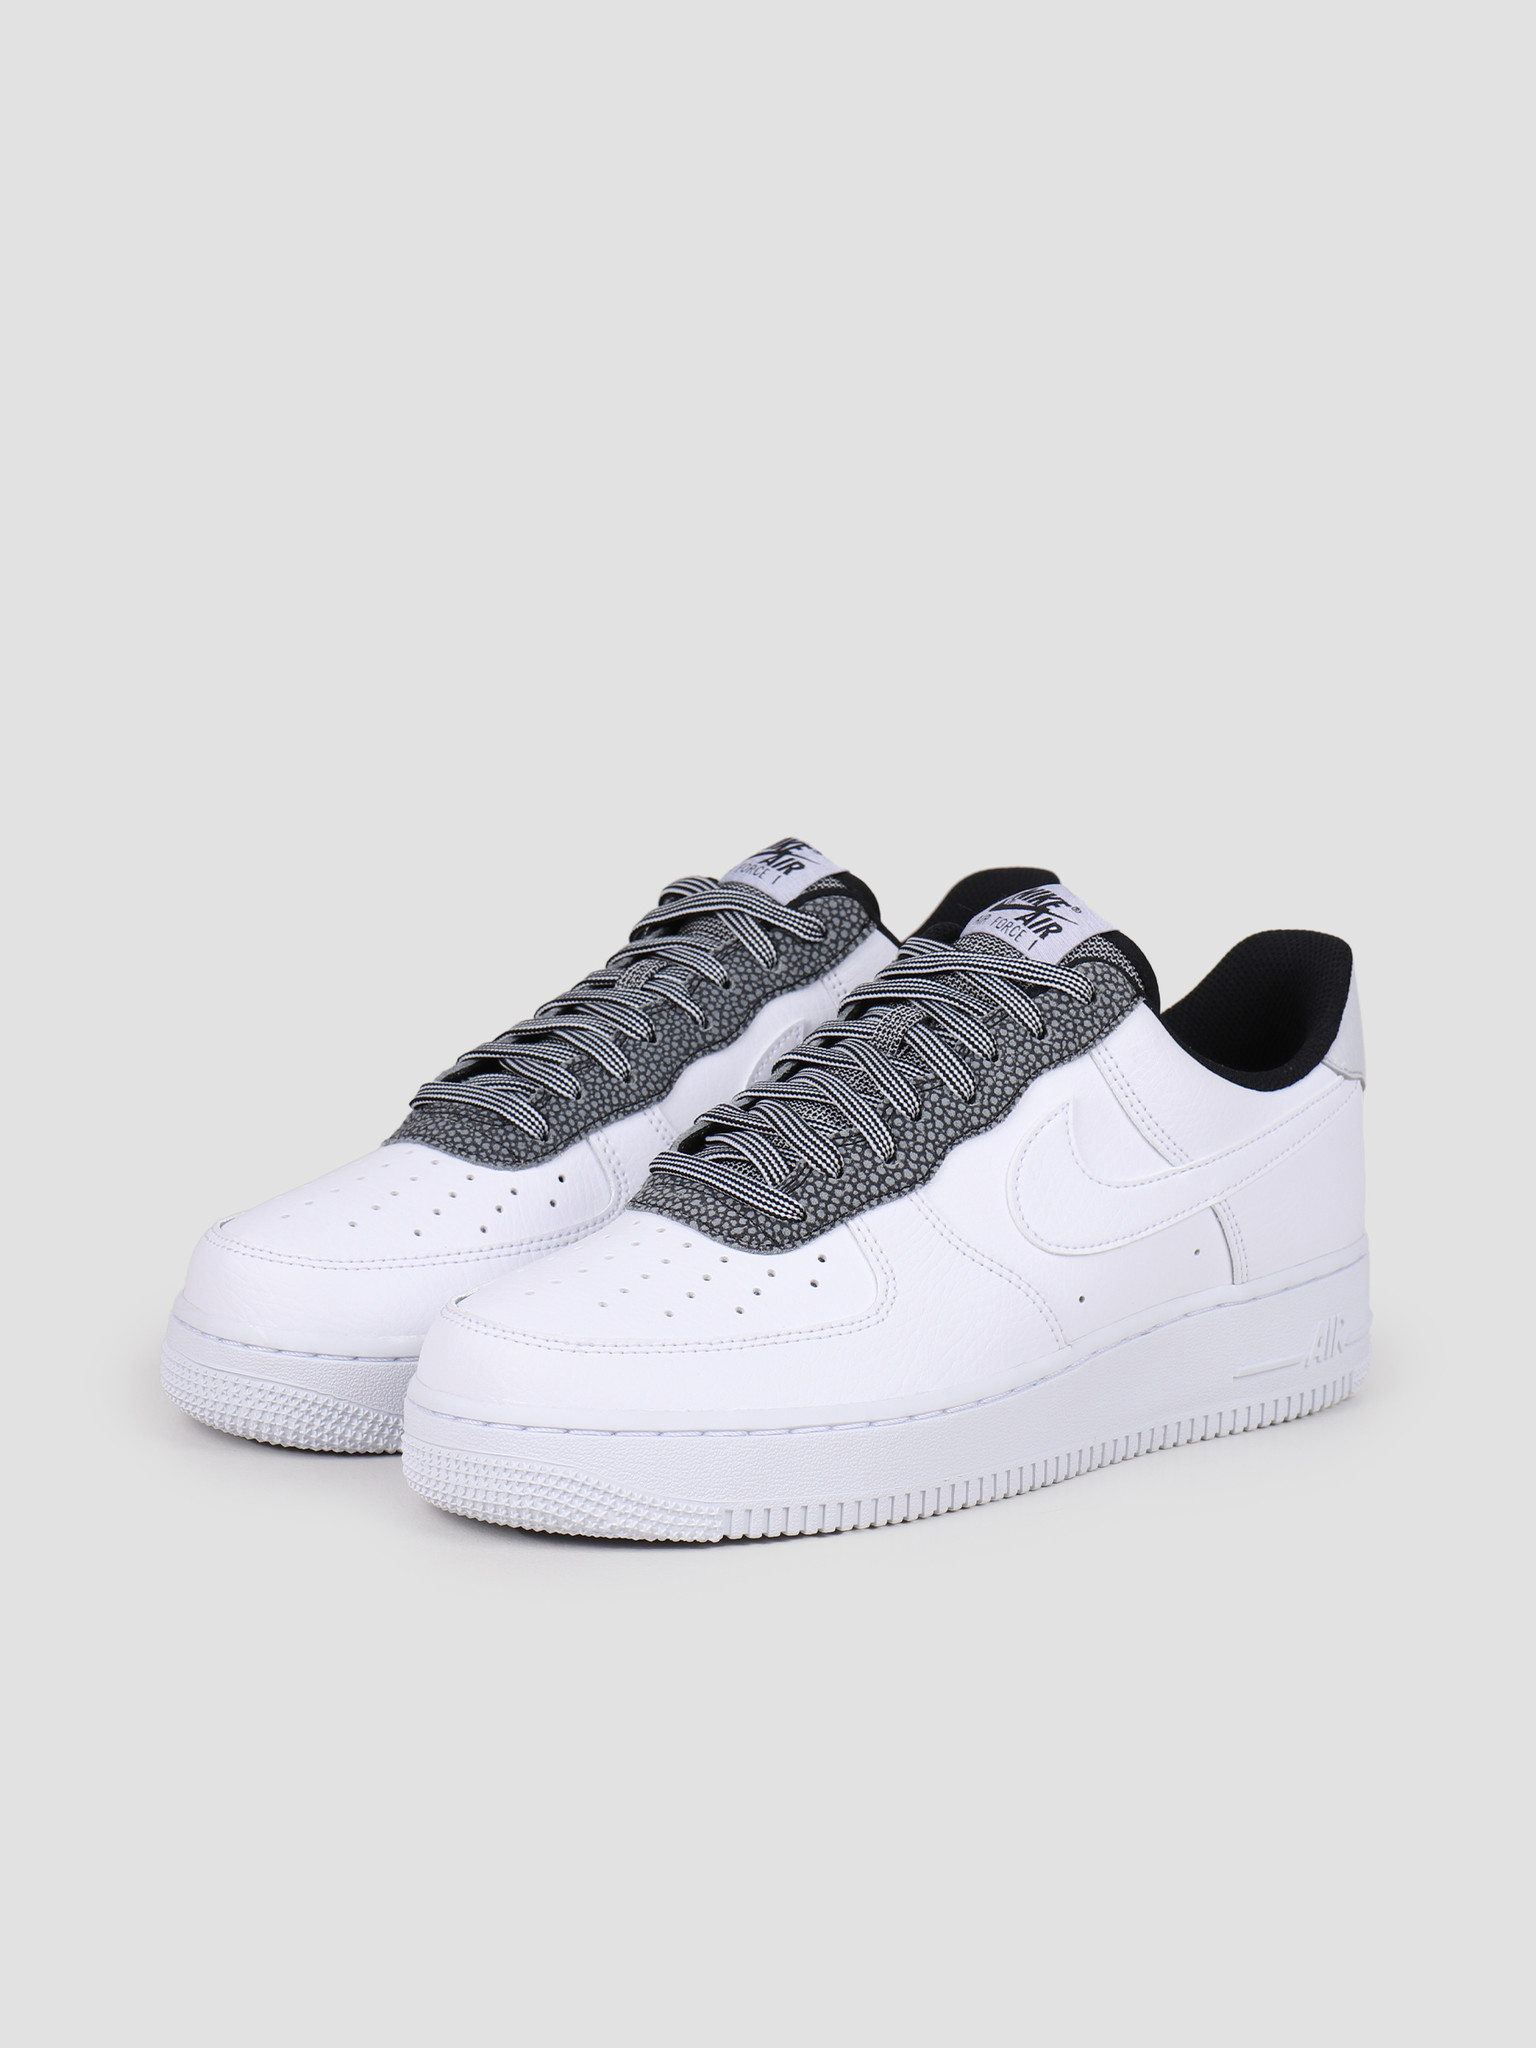 Nike Air Force 1 '07 Lv8 4 White White Cool Grey Pure Platinum CK4363 100